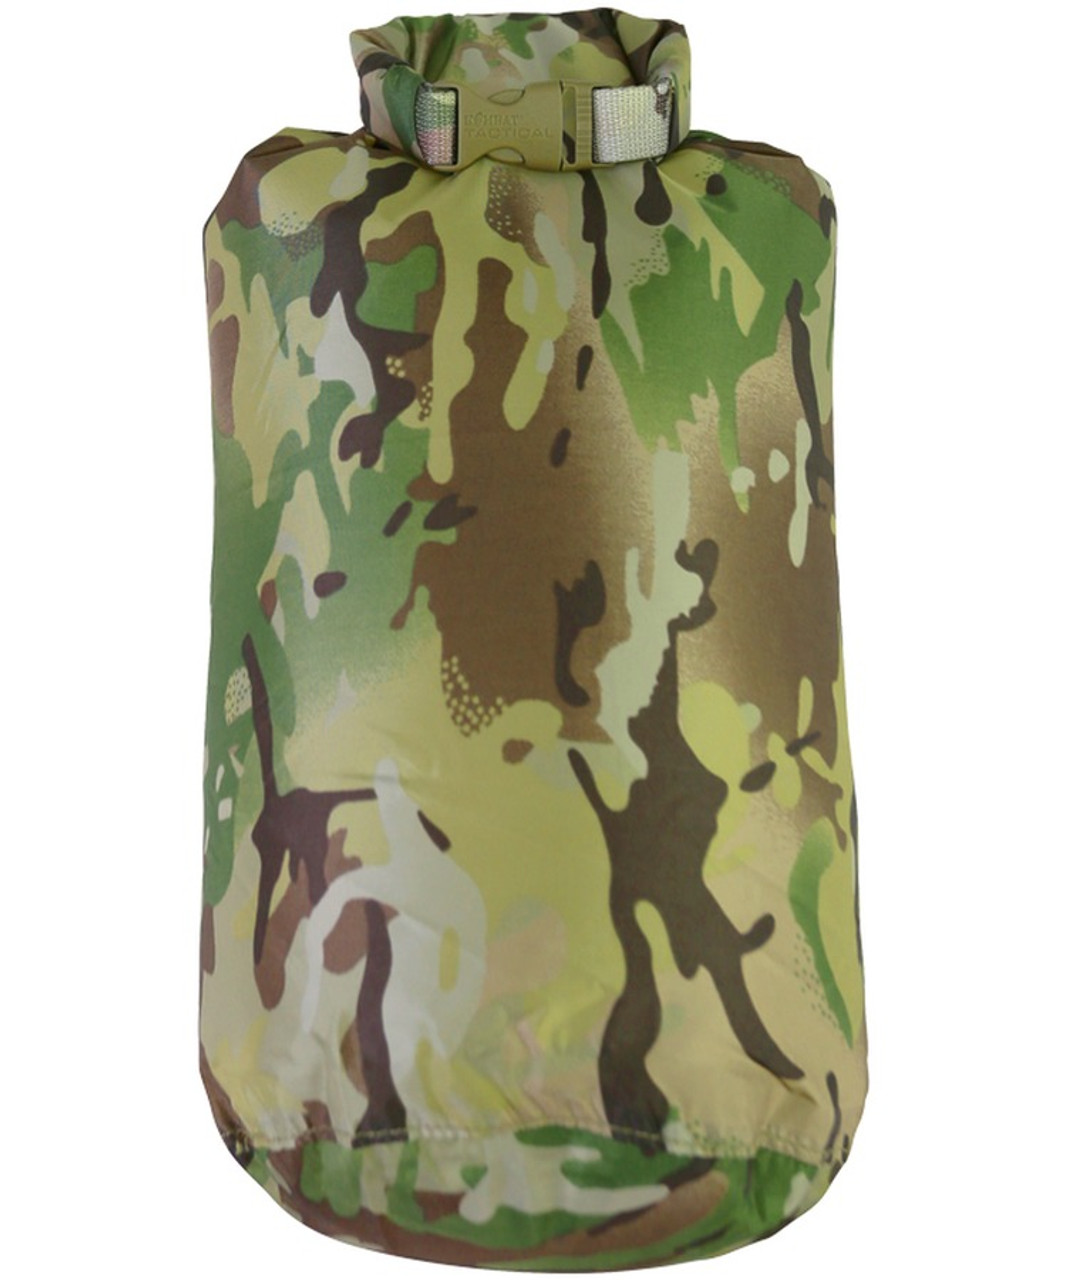 Lightweight Dry Sack - 15L